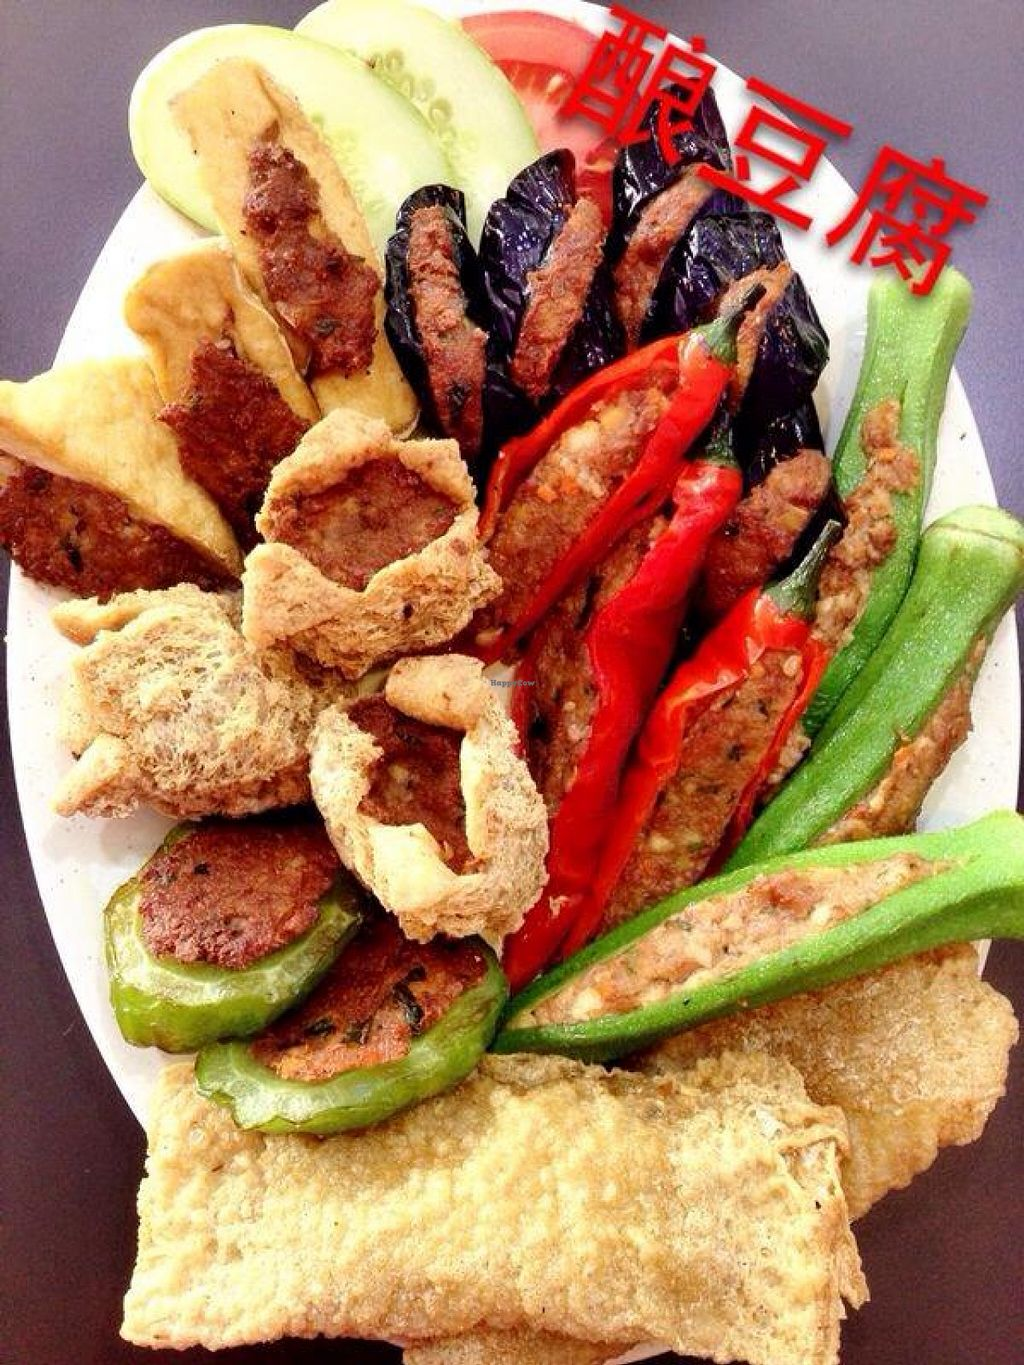 """Photo of Happy Garden Vege Cafe  by <a href=""""/members/profile/community"""">community</a> <br/>Fried Yong Tou Fu <br/> May 10, 2016  - <a href='/contact/abuse/image/66438/148386'>Report</a>"""